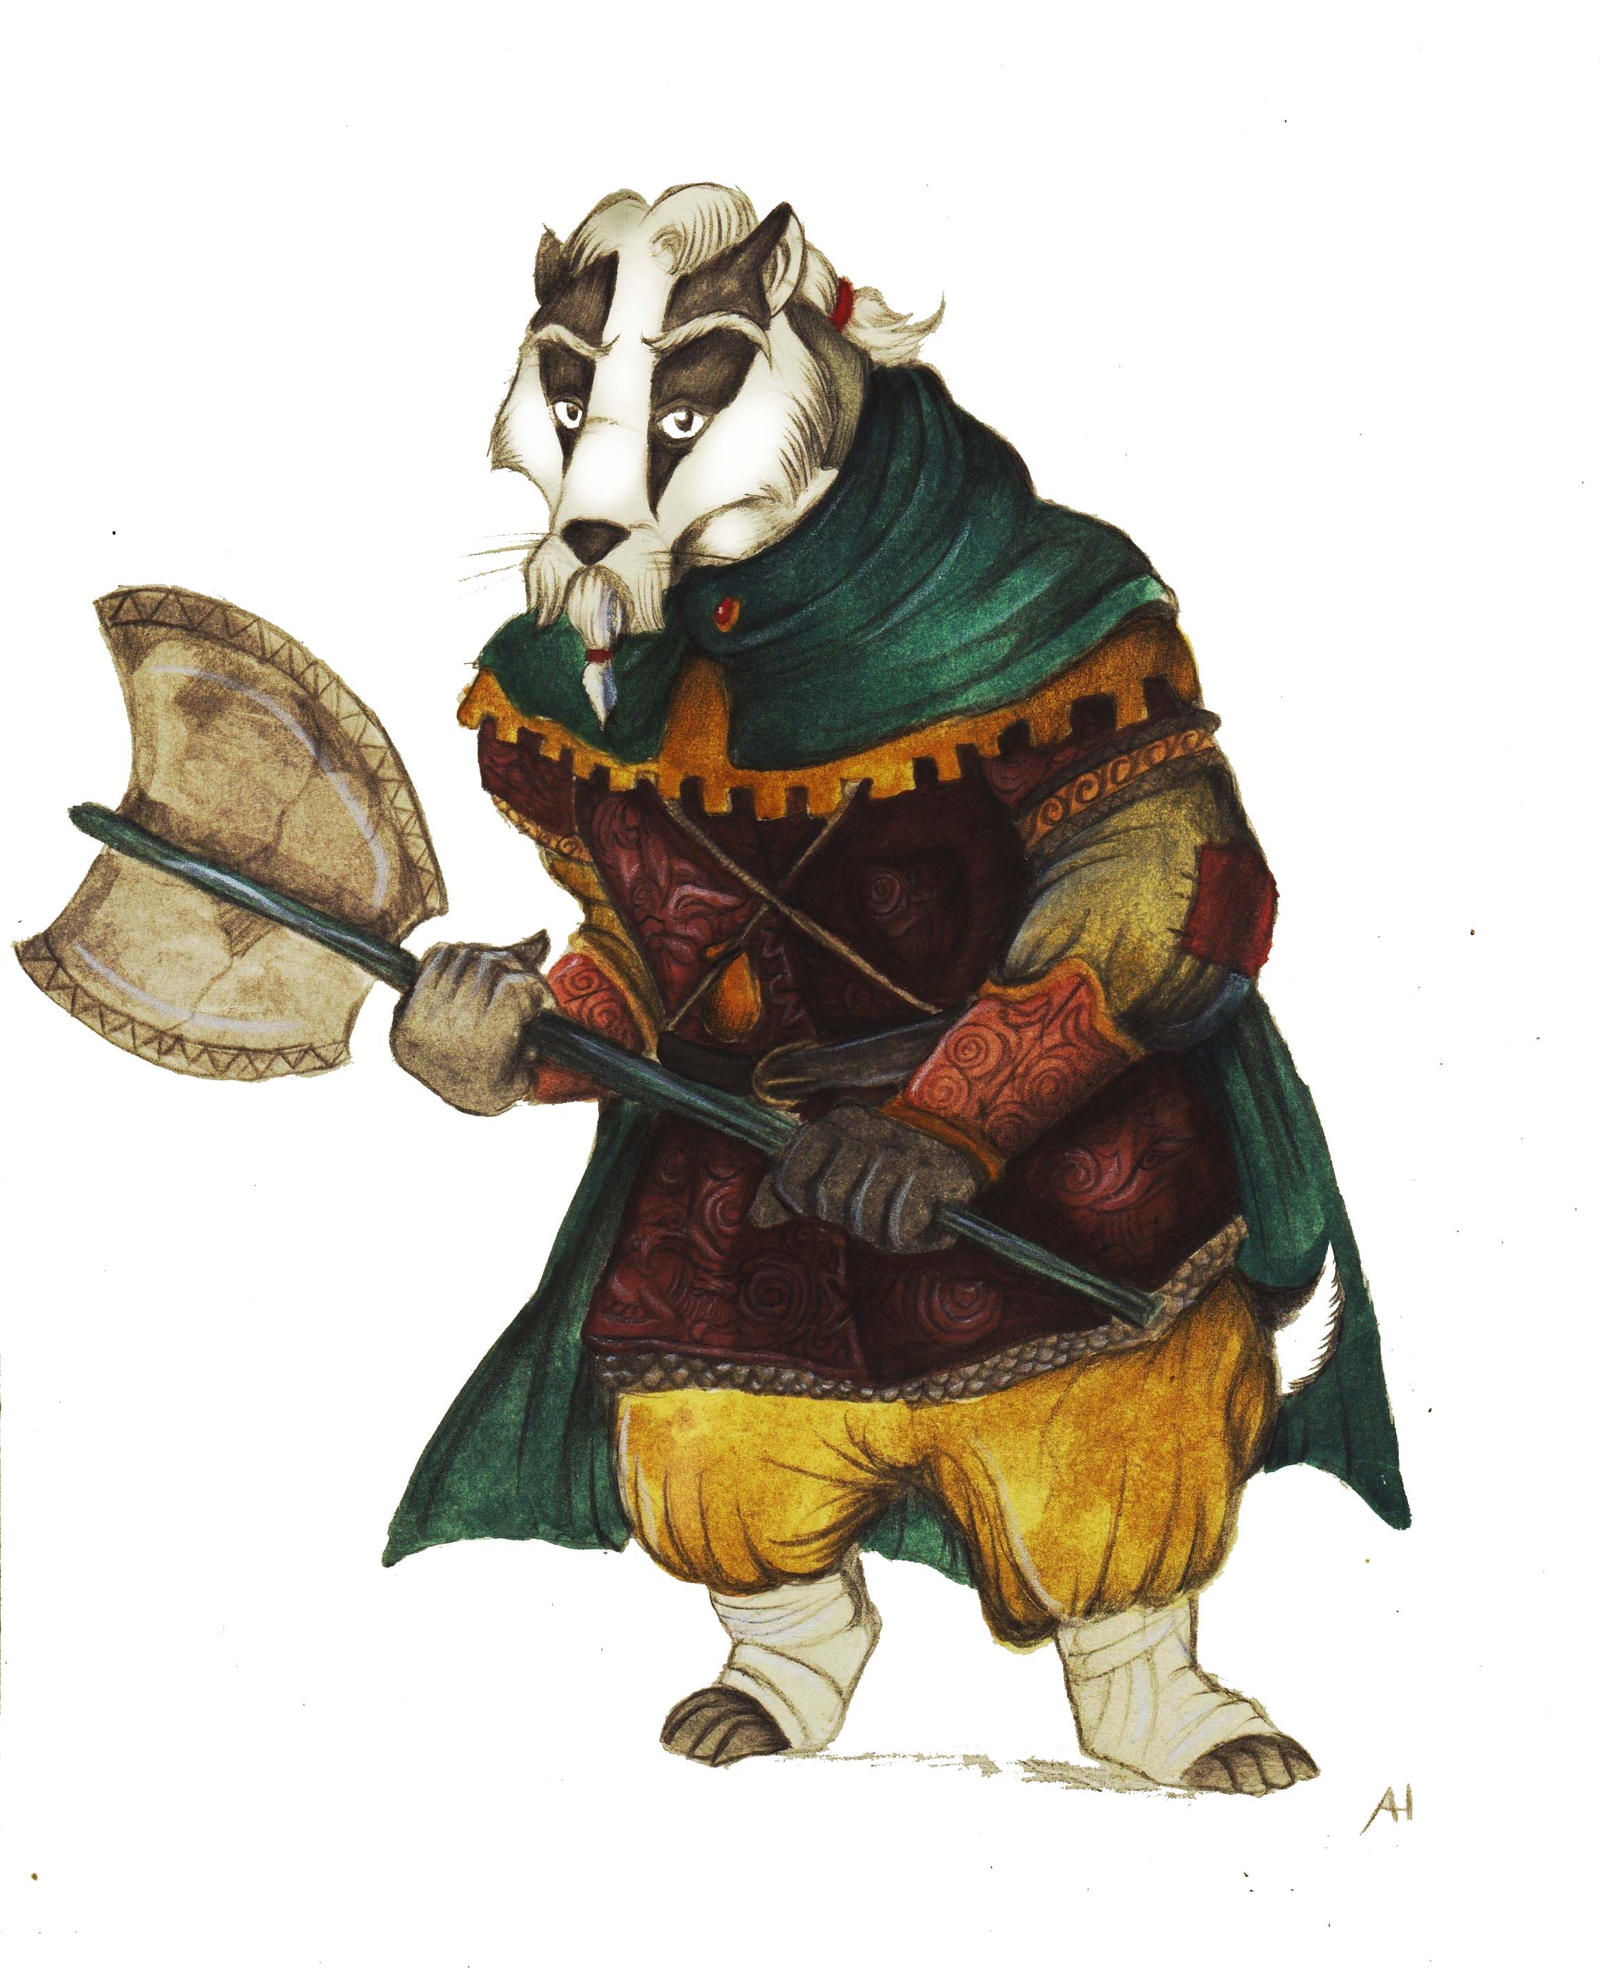 Redwall Orlando the Axe by FairytalesArtist